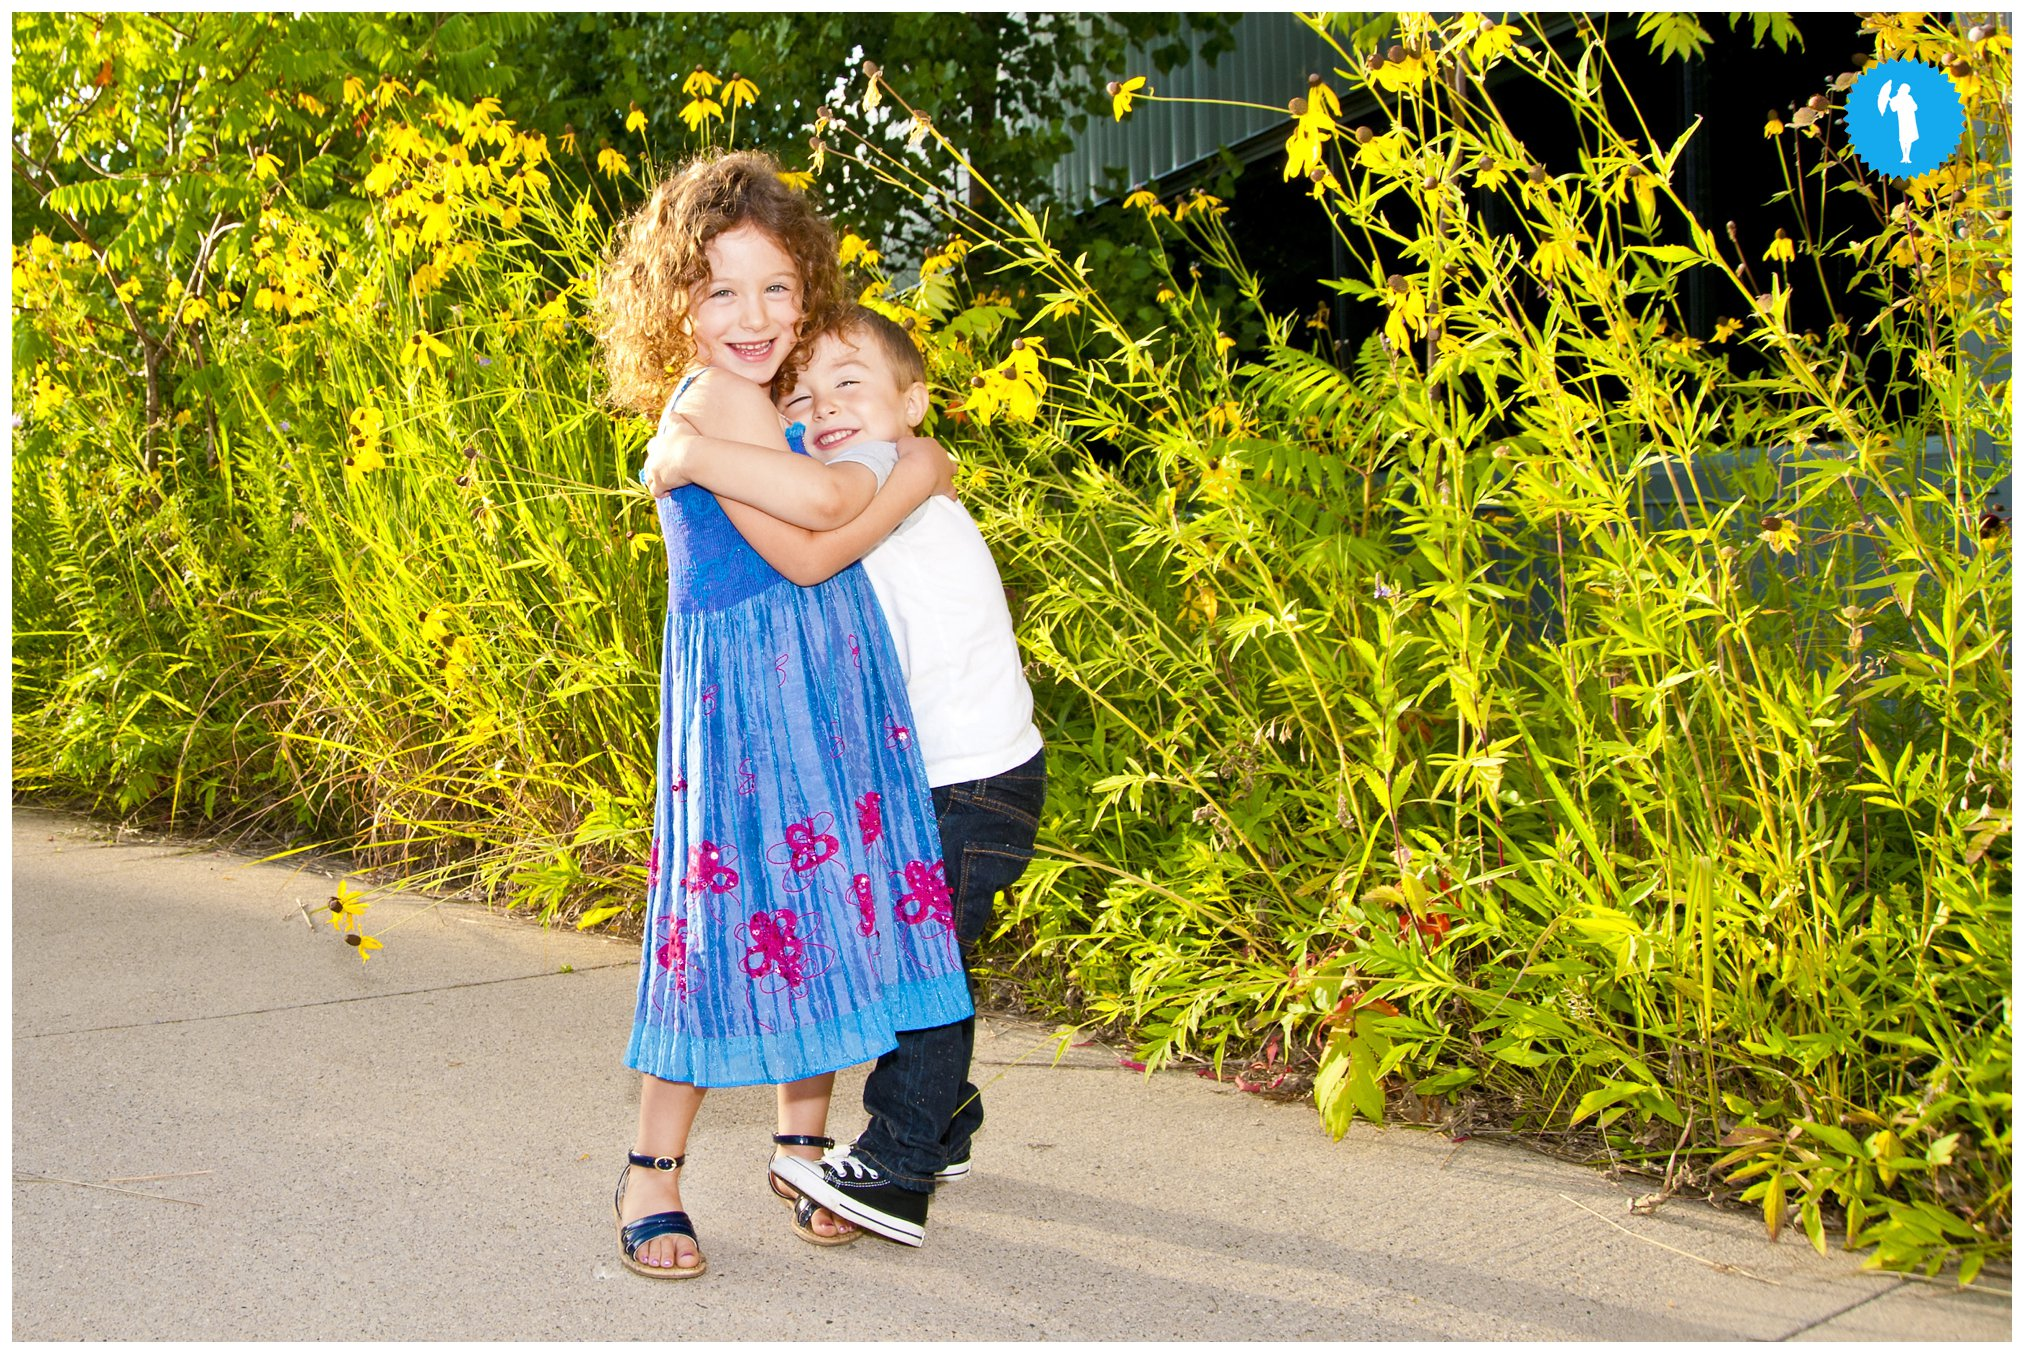 Family portraits in Kitchener by Emily Beatty.